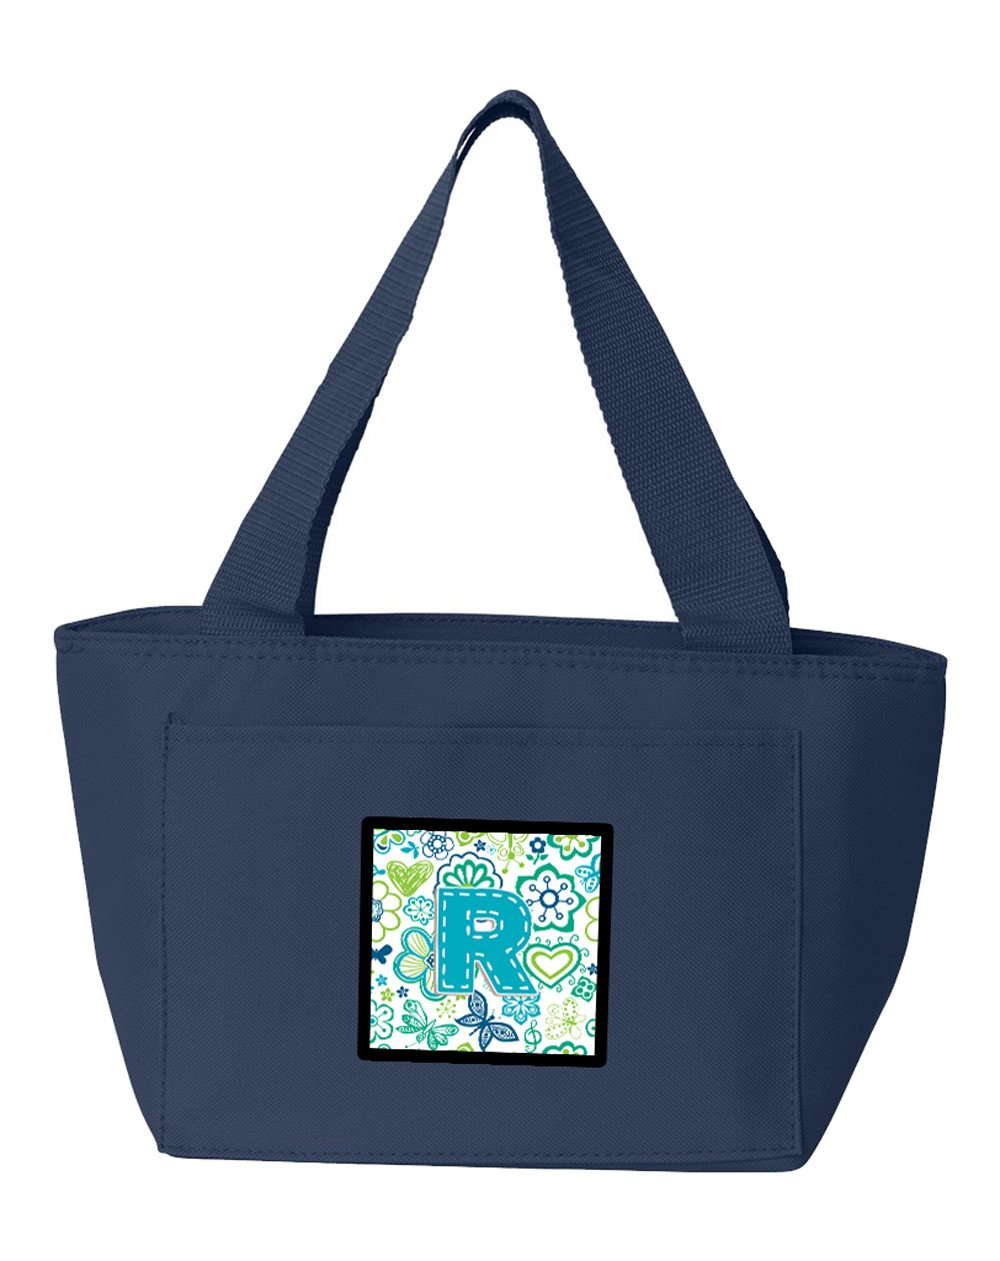 Letter R Flowers and Butterflies Teal Blue Lunch Bag CJ2006-RNA-8808 by Caroline's Treasures